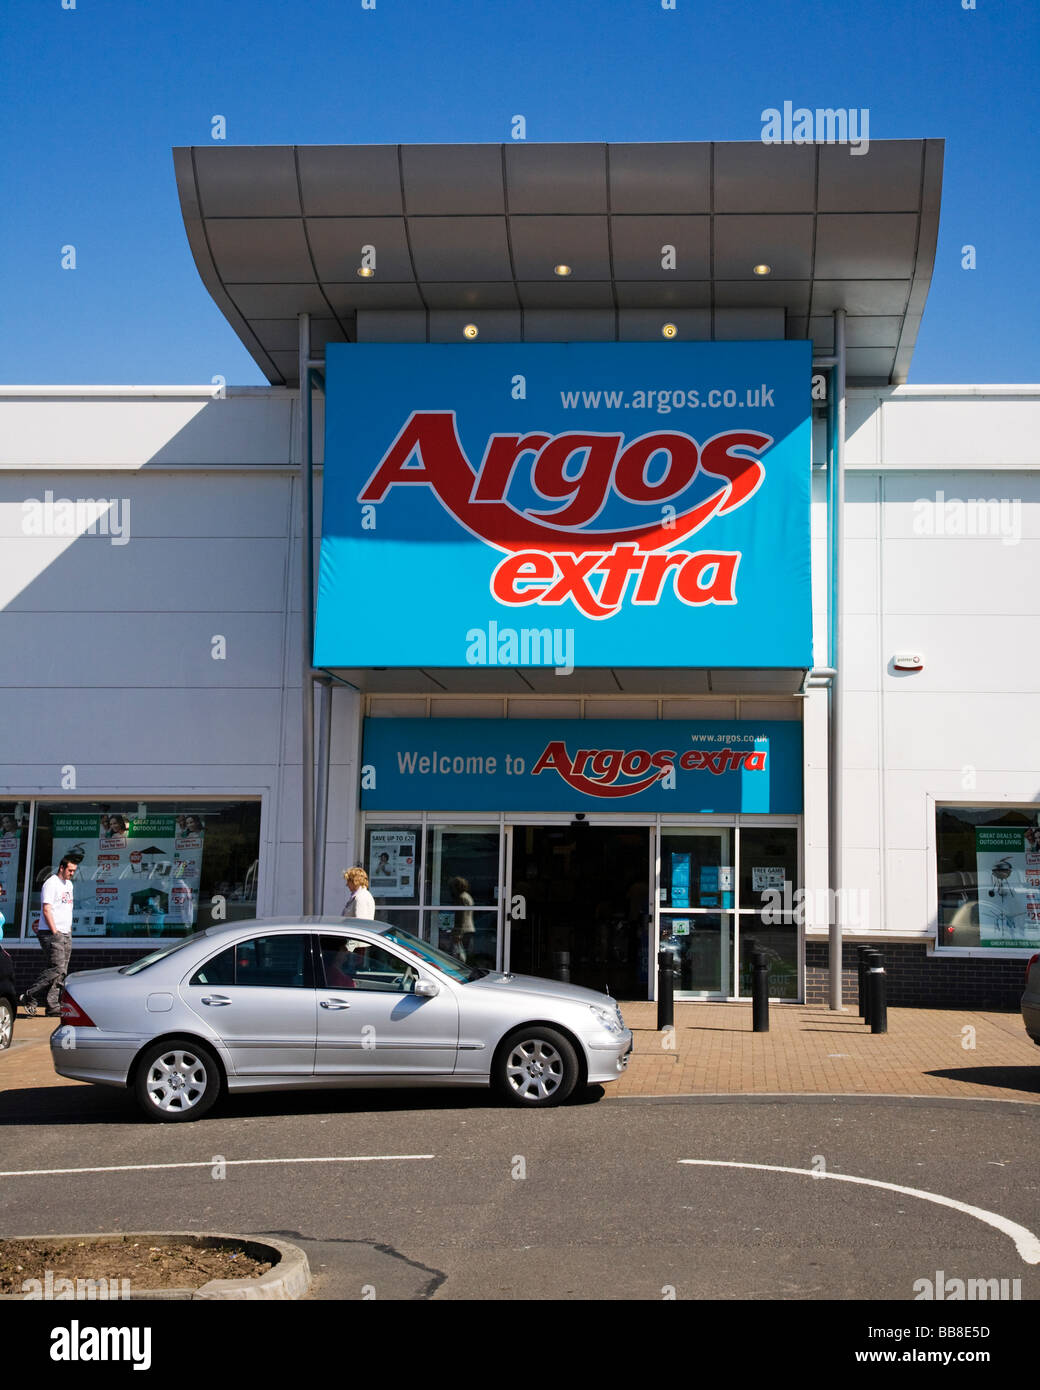 Entrance to the Argos Extra store at Dumbarton, West Dumbartonshire, Scotland. - Stock Image